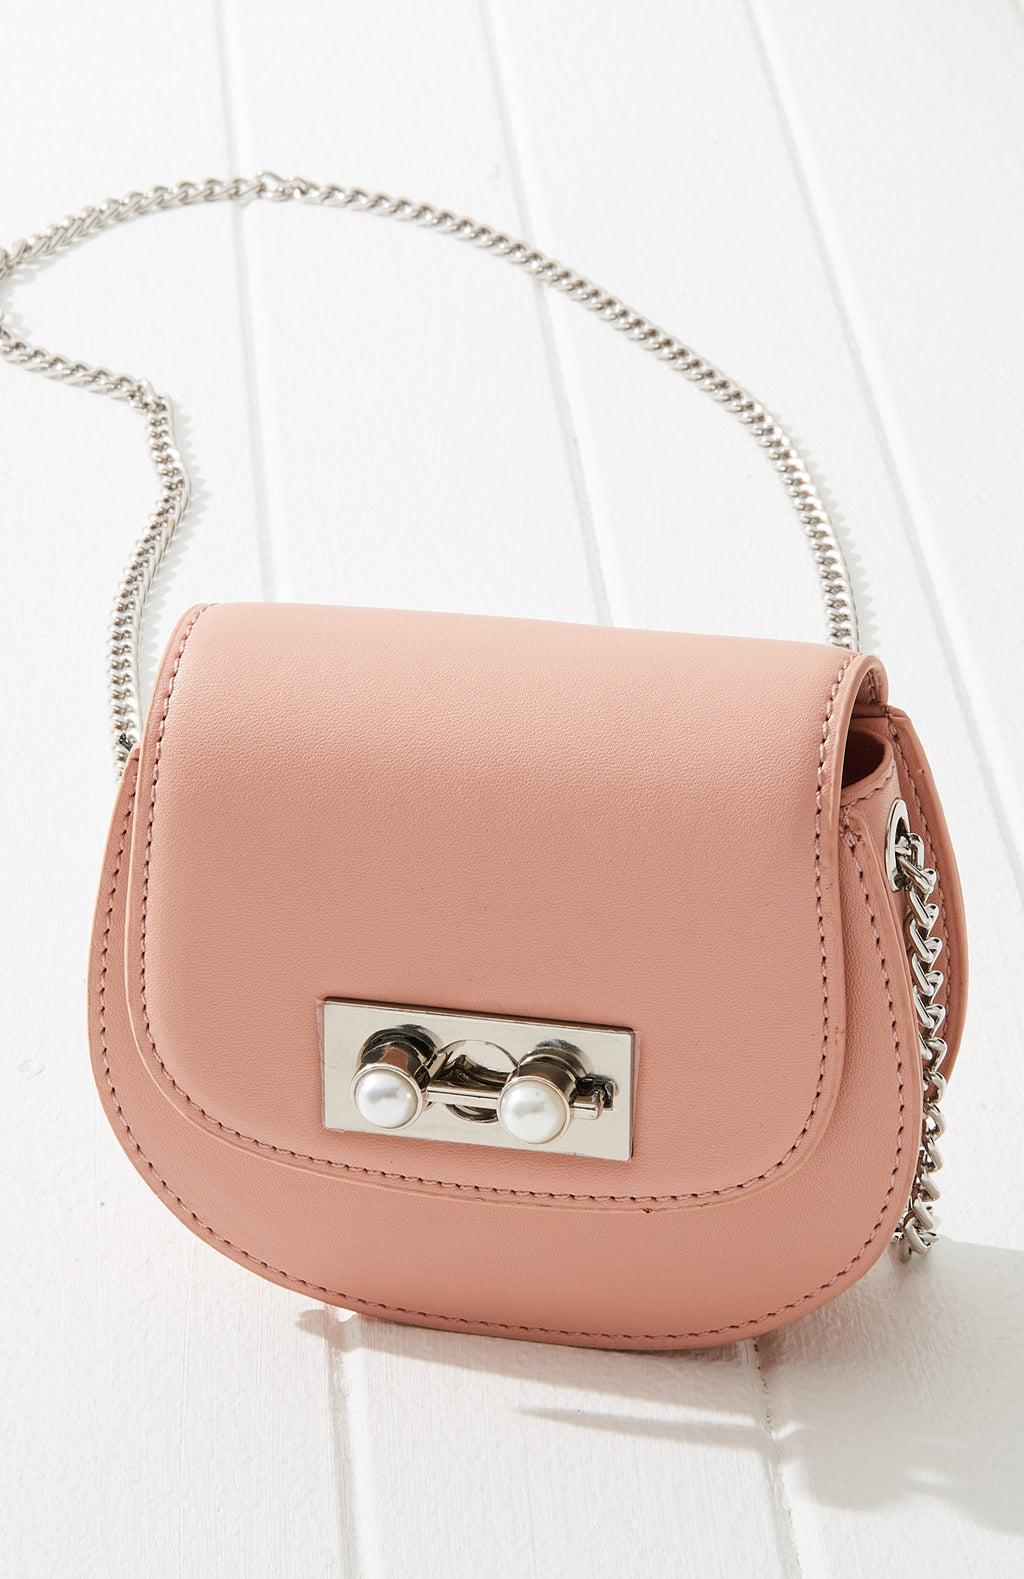 AS995009 Mini Bella Bag